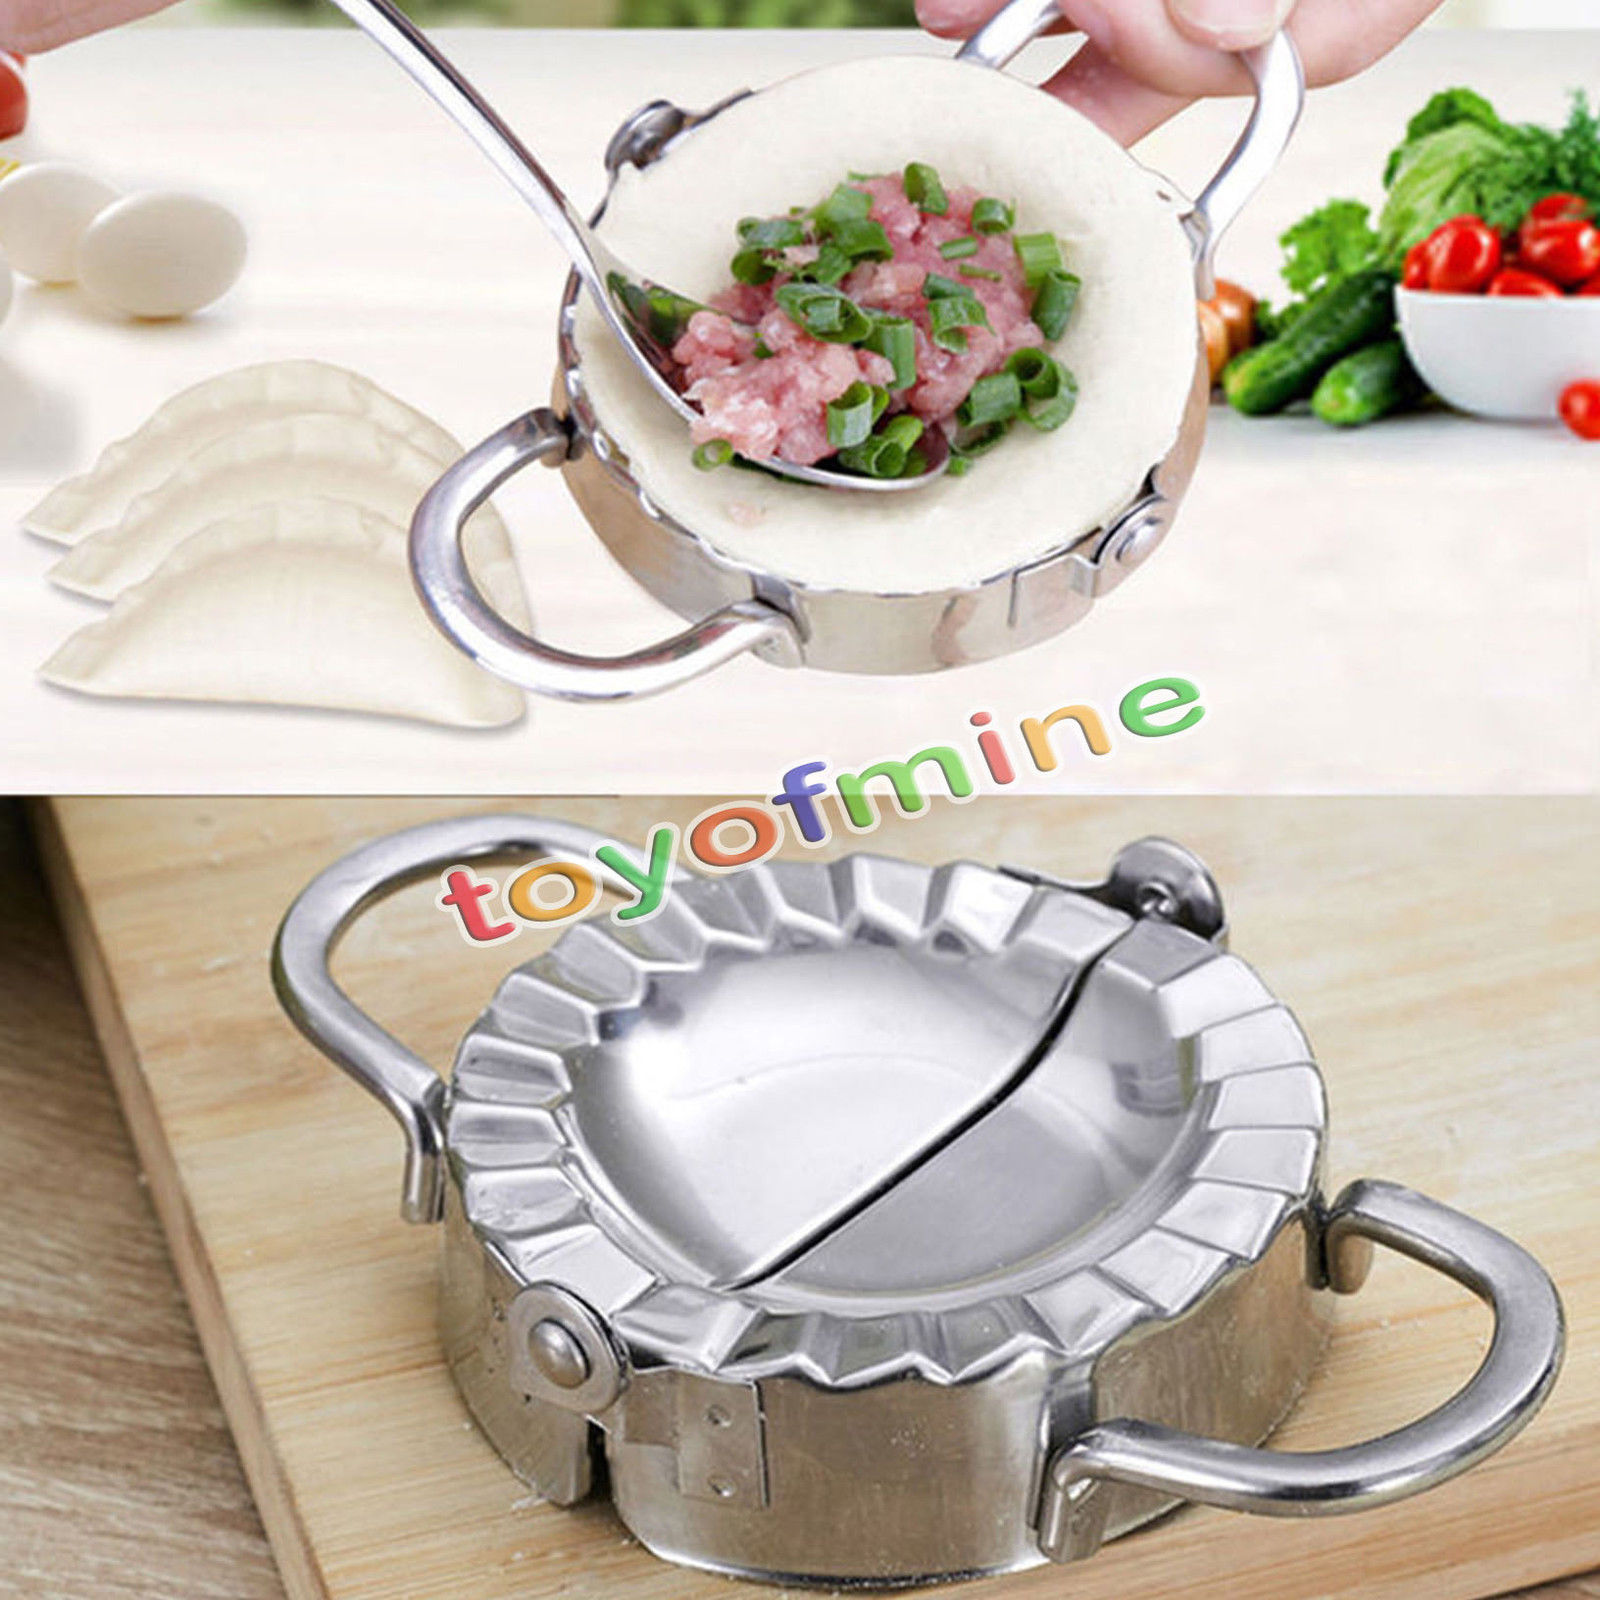 Tools stainless steel wraper dough cutter pie ravioli dumpling mould - New Eco Friendly Pastry Tools Stainless Steel Dumpling Maker Wraper Dough Cutter Pie Ravioli Dumpling Mould Kitchen Accessories